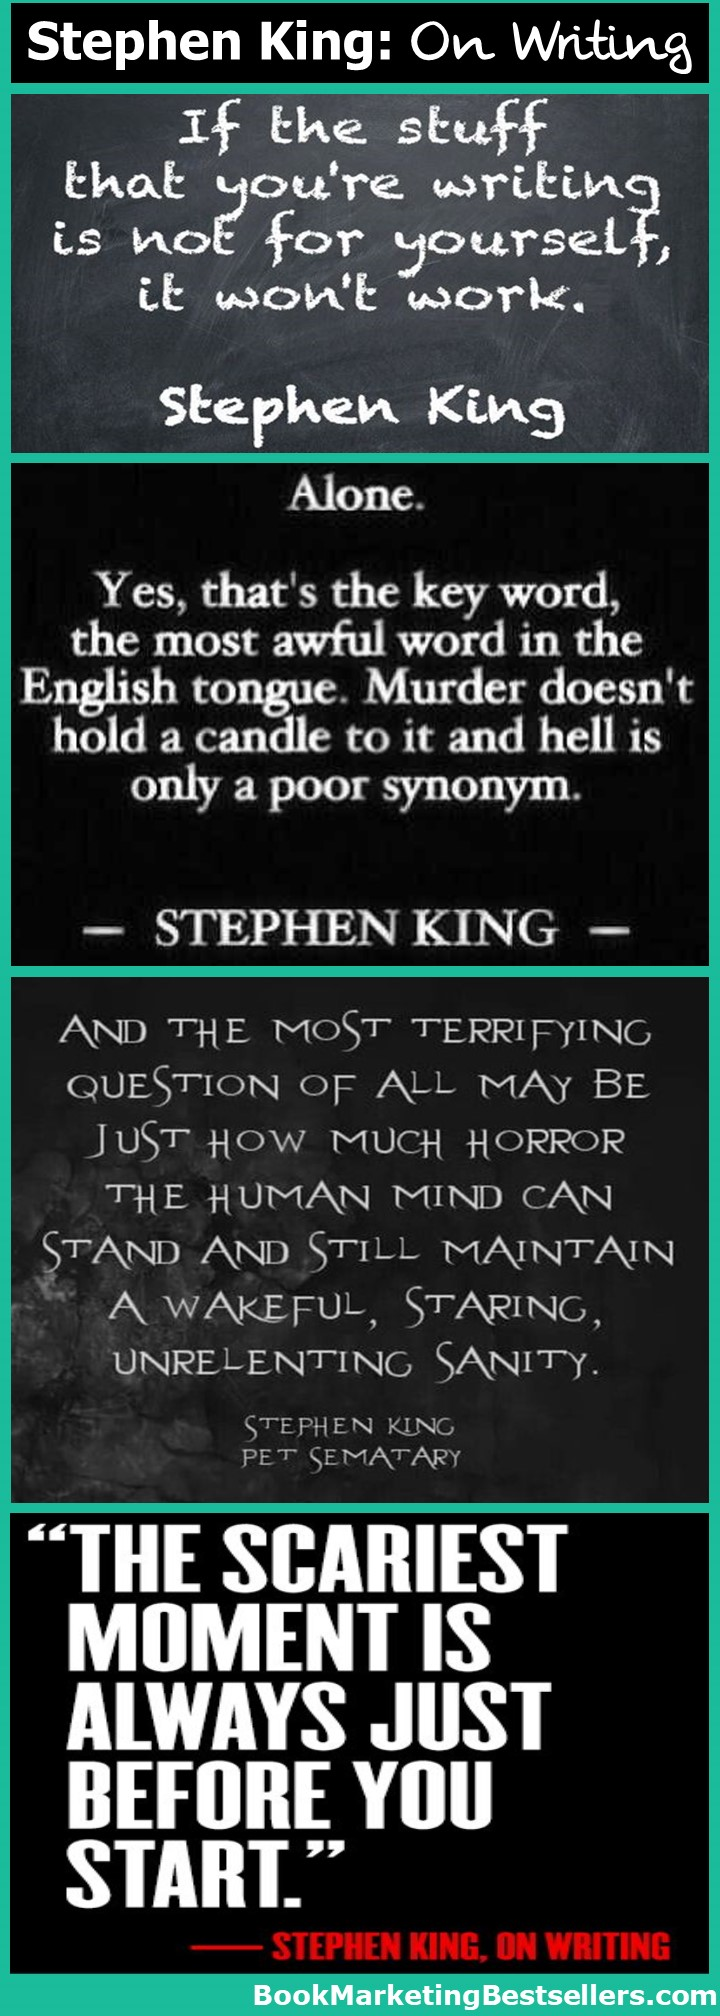 Stephen King on Writing: Here are a few wonderful quotations from master storyteller Stephen King on writing and horror presented as a tip-o-graphic. Enjoy these writing quotes.